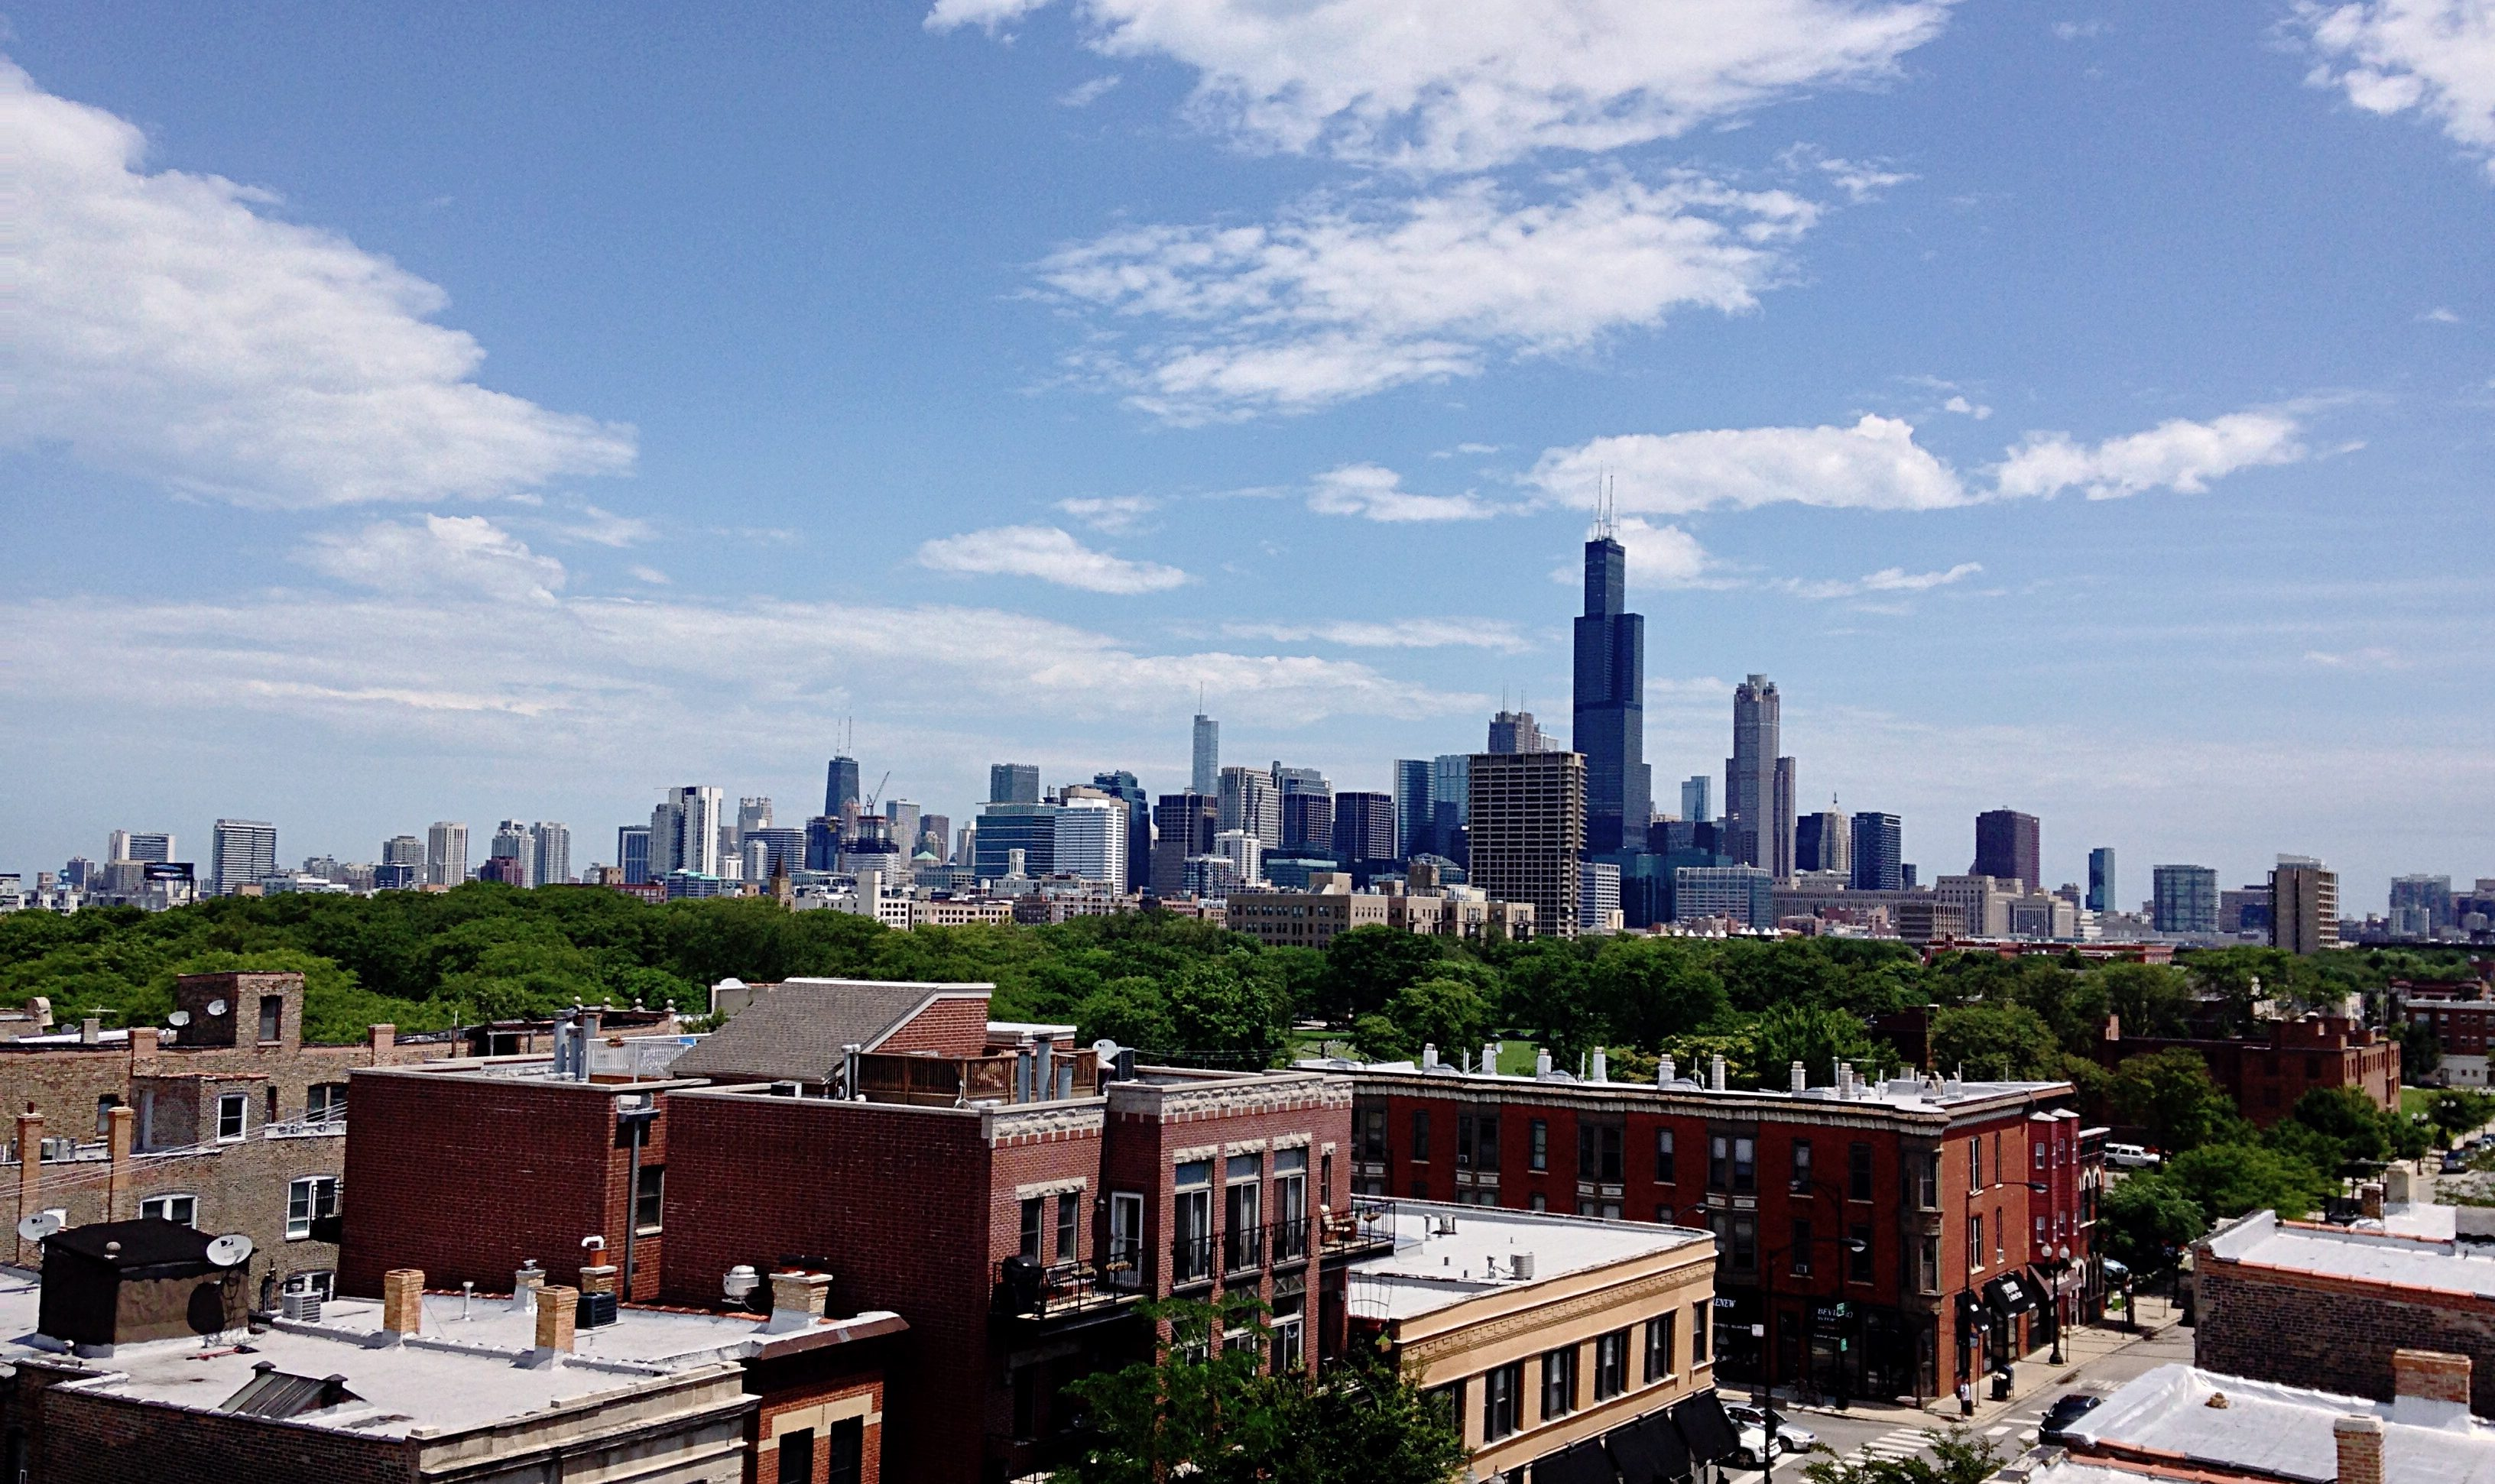 Photo of the City of Chicago